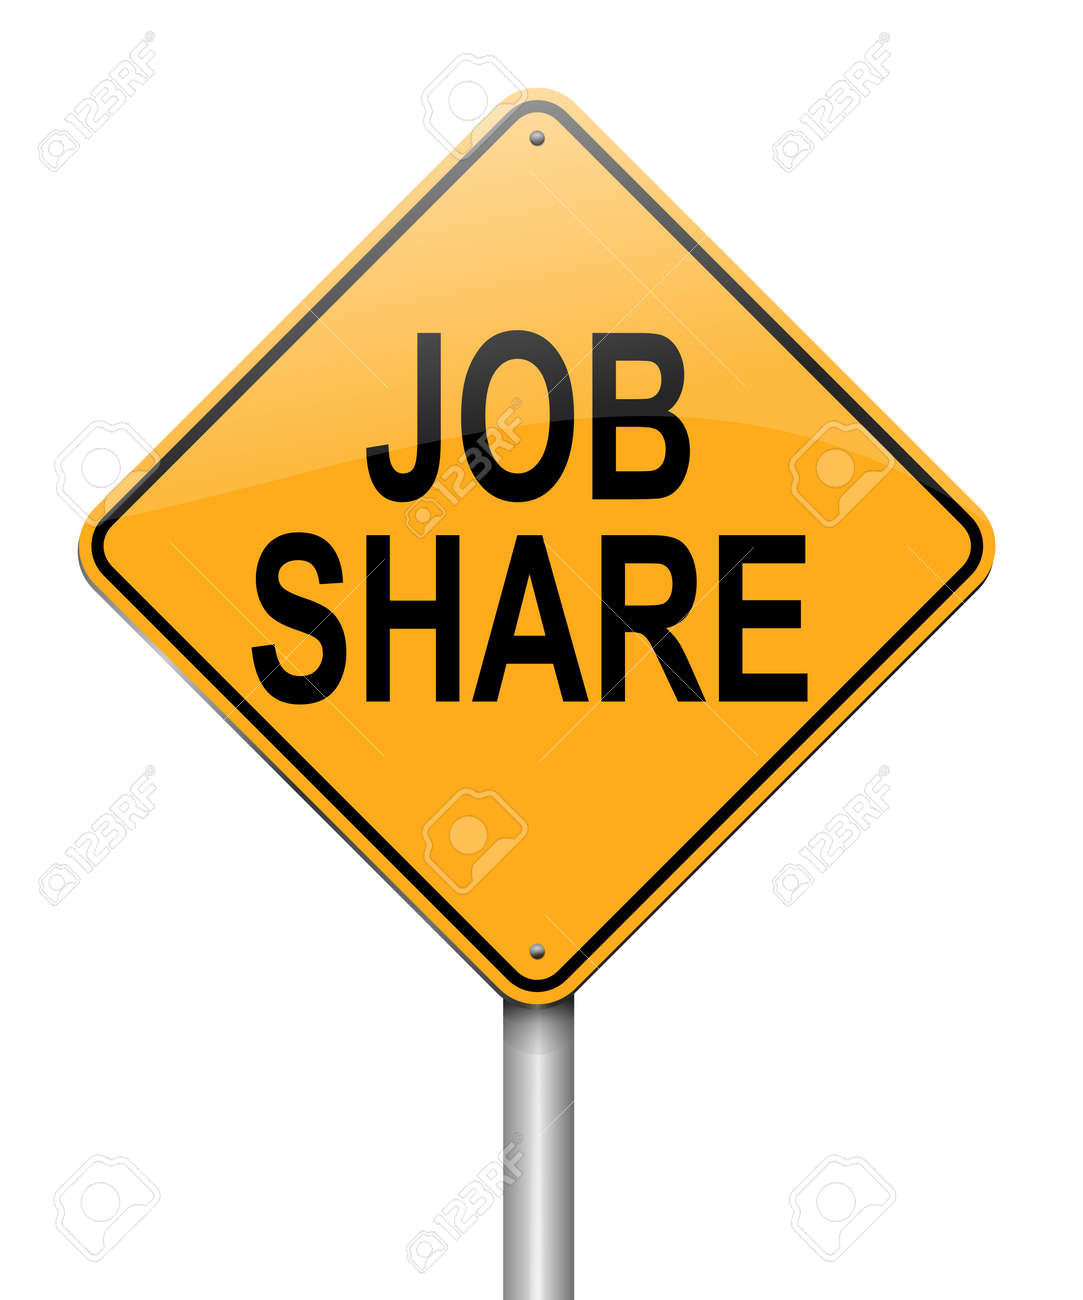 Illustration depicting a roadsign with a job sharing concept. White background. Stock Photo - 15815798